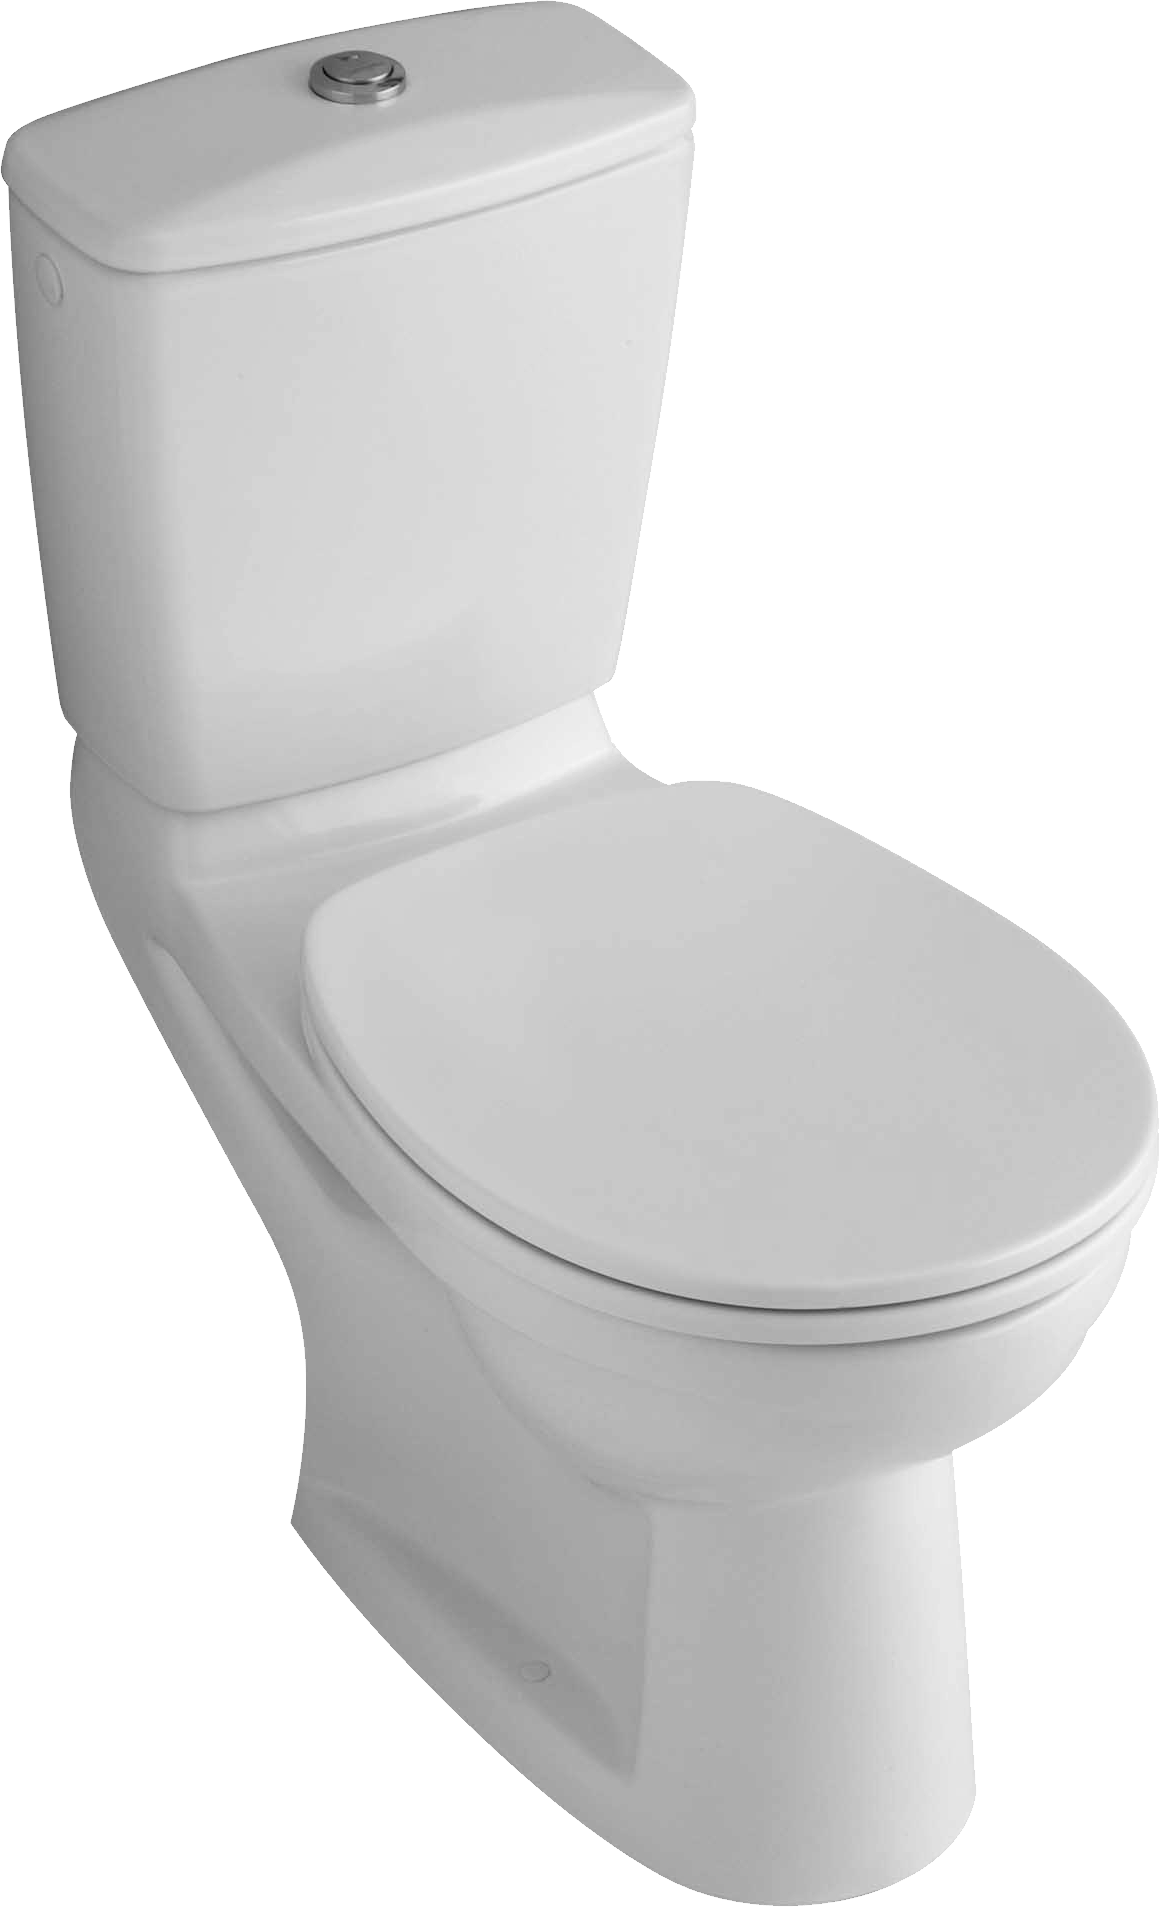 toilet png images are download crazypngm crazy png images download #29287